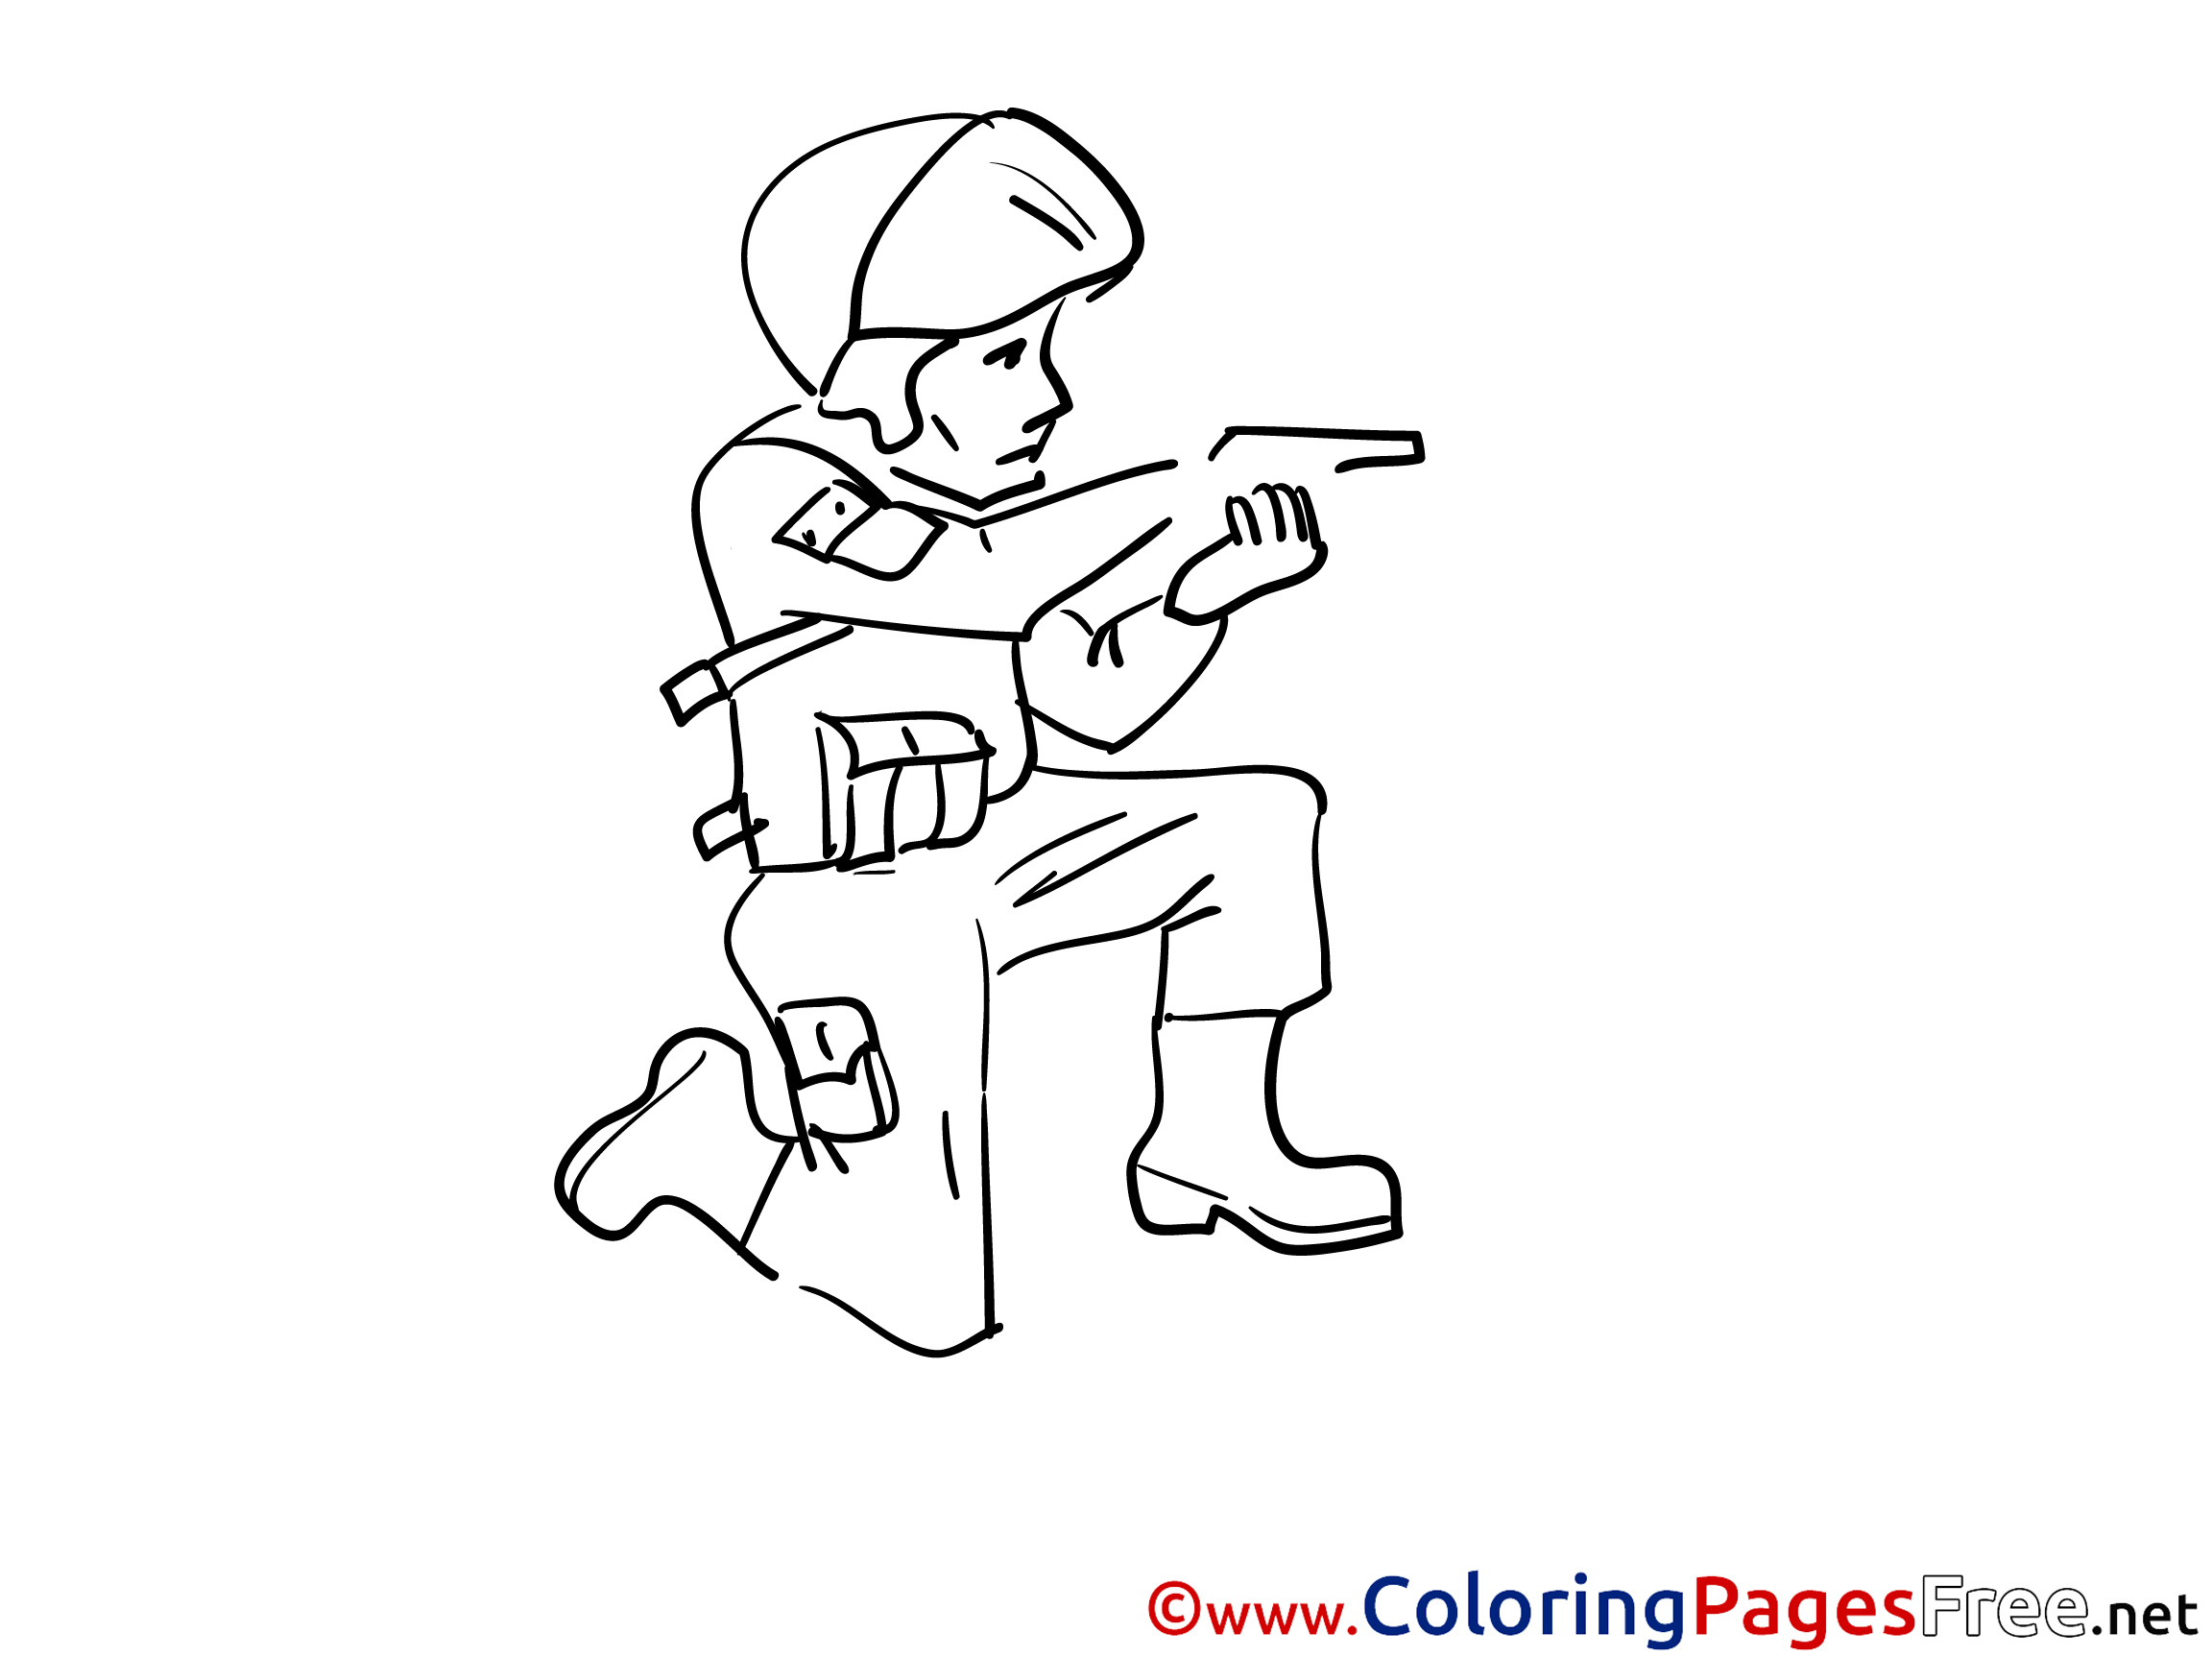 SWAT Coloring Pages for free